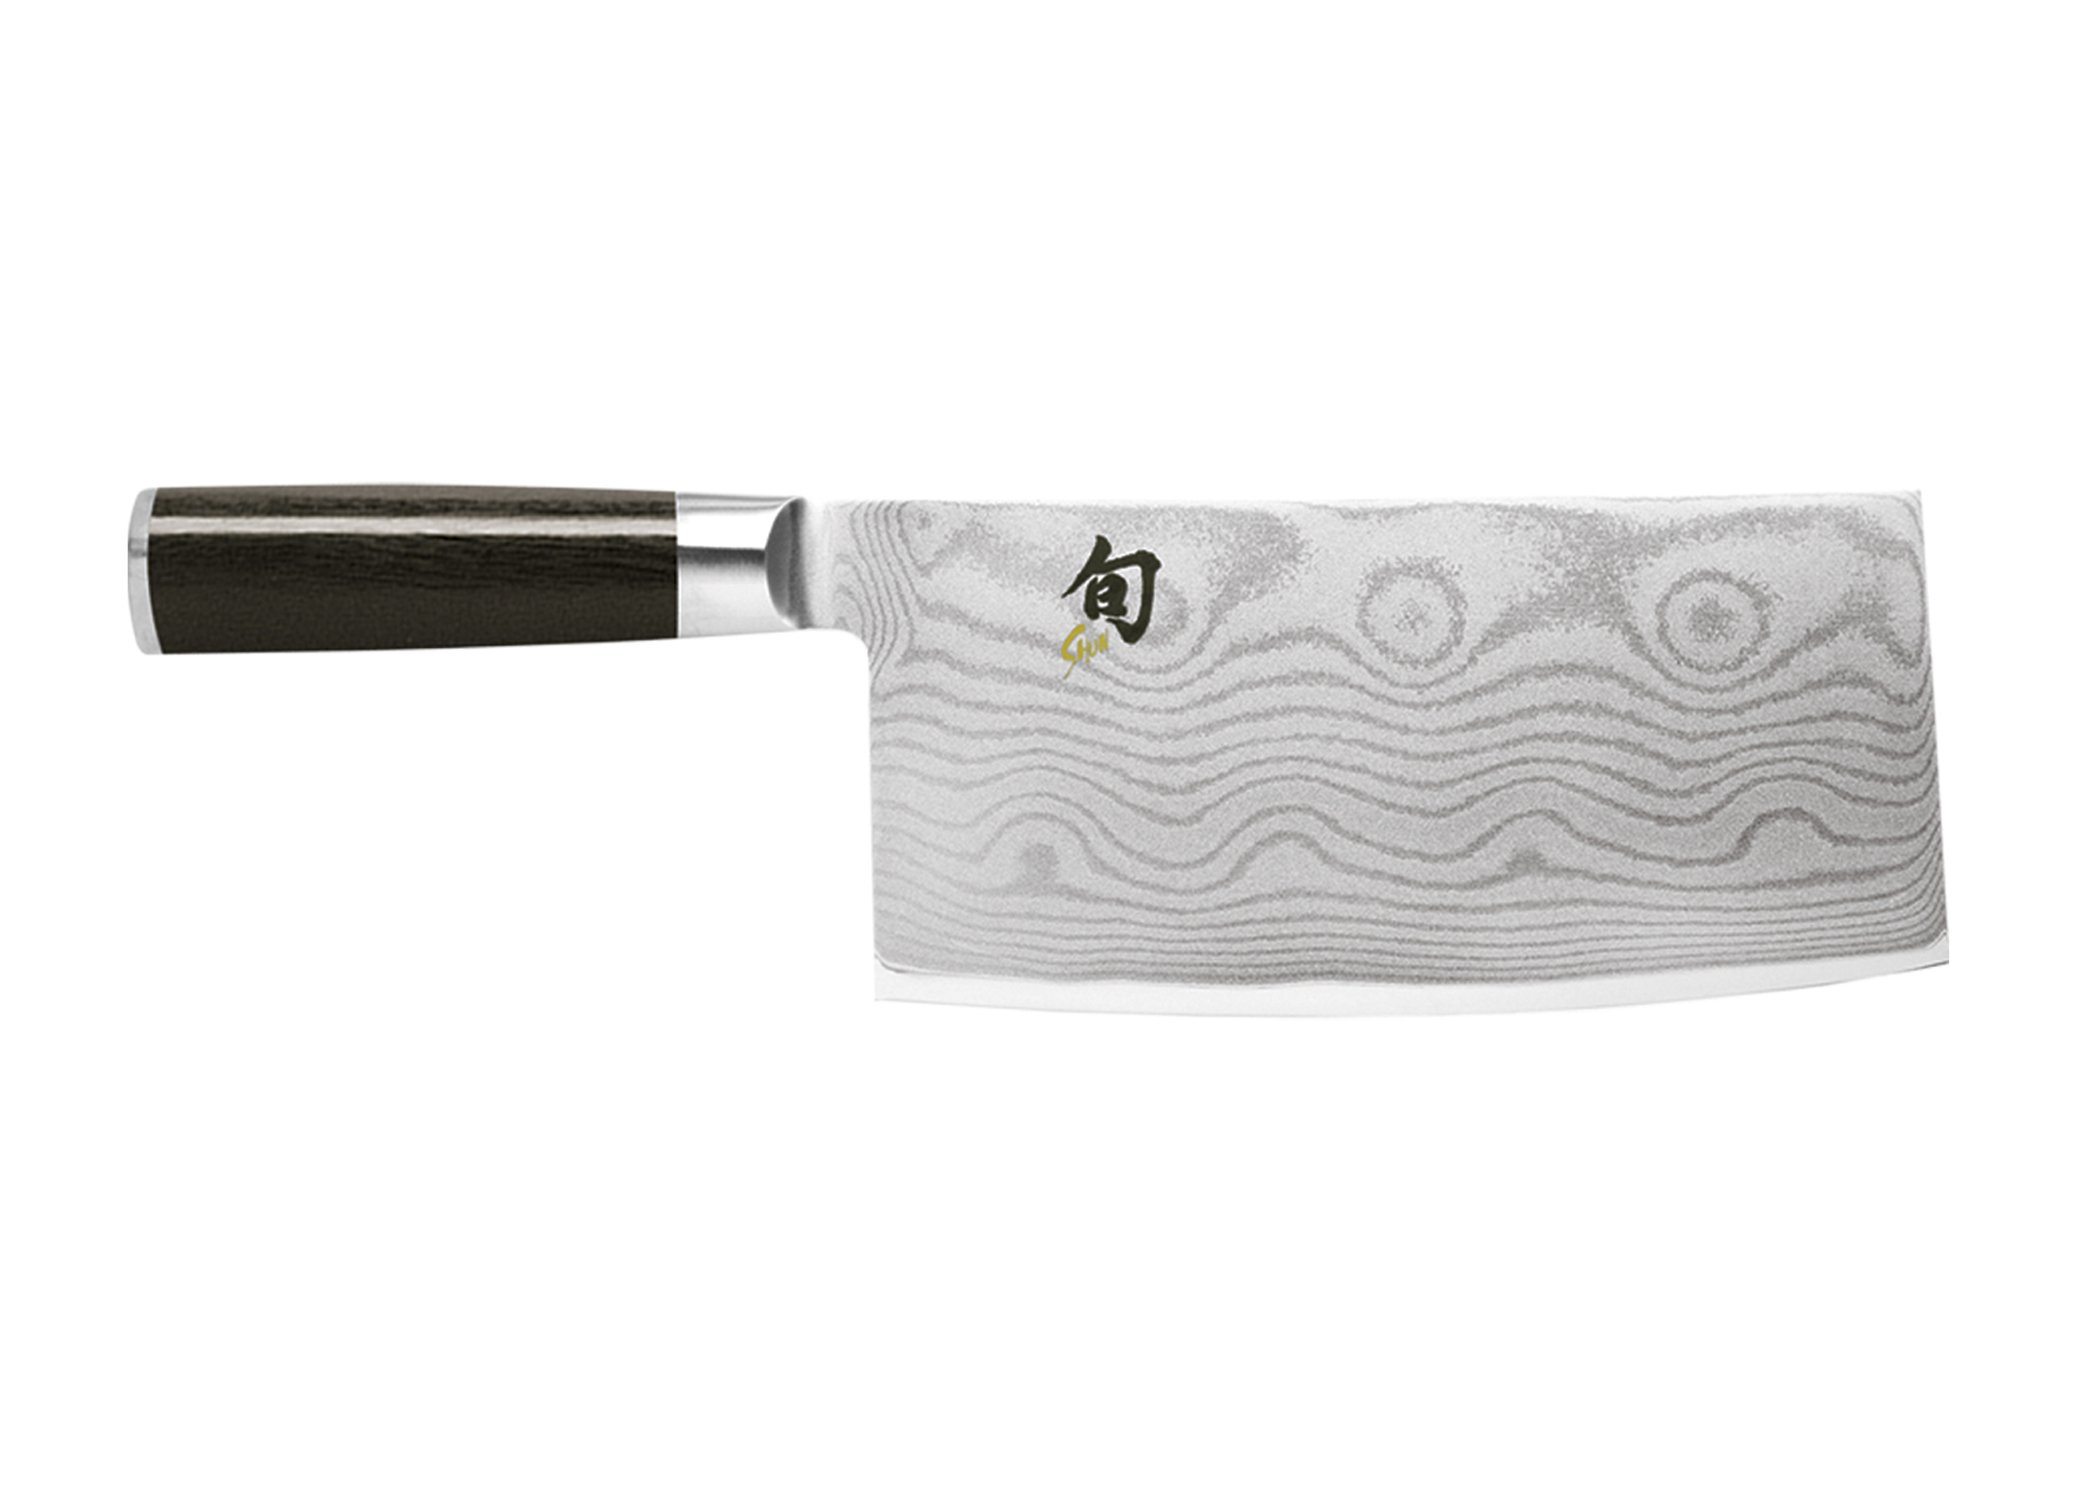 Shun DM0712 Classic 7-Inch Chinese Vegetable Cleaver by Shun